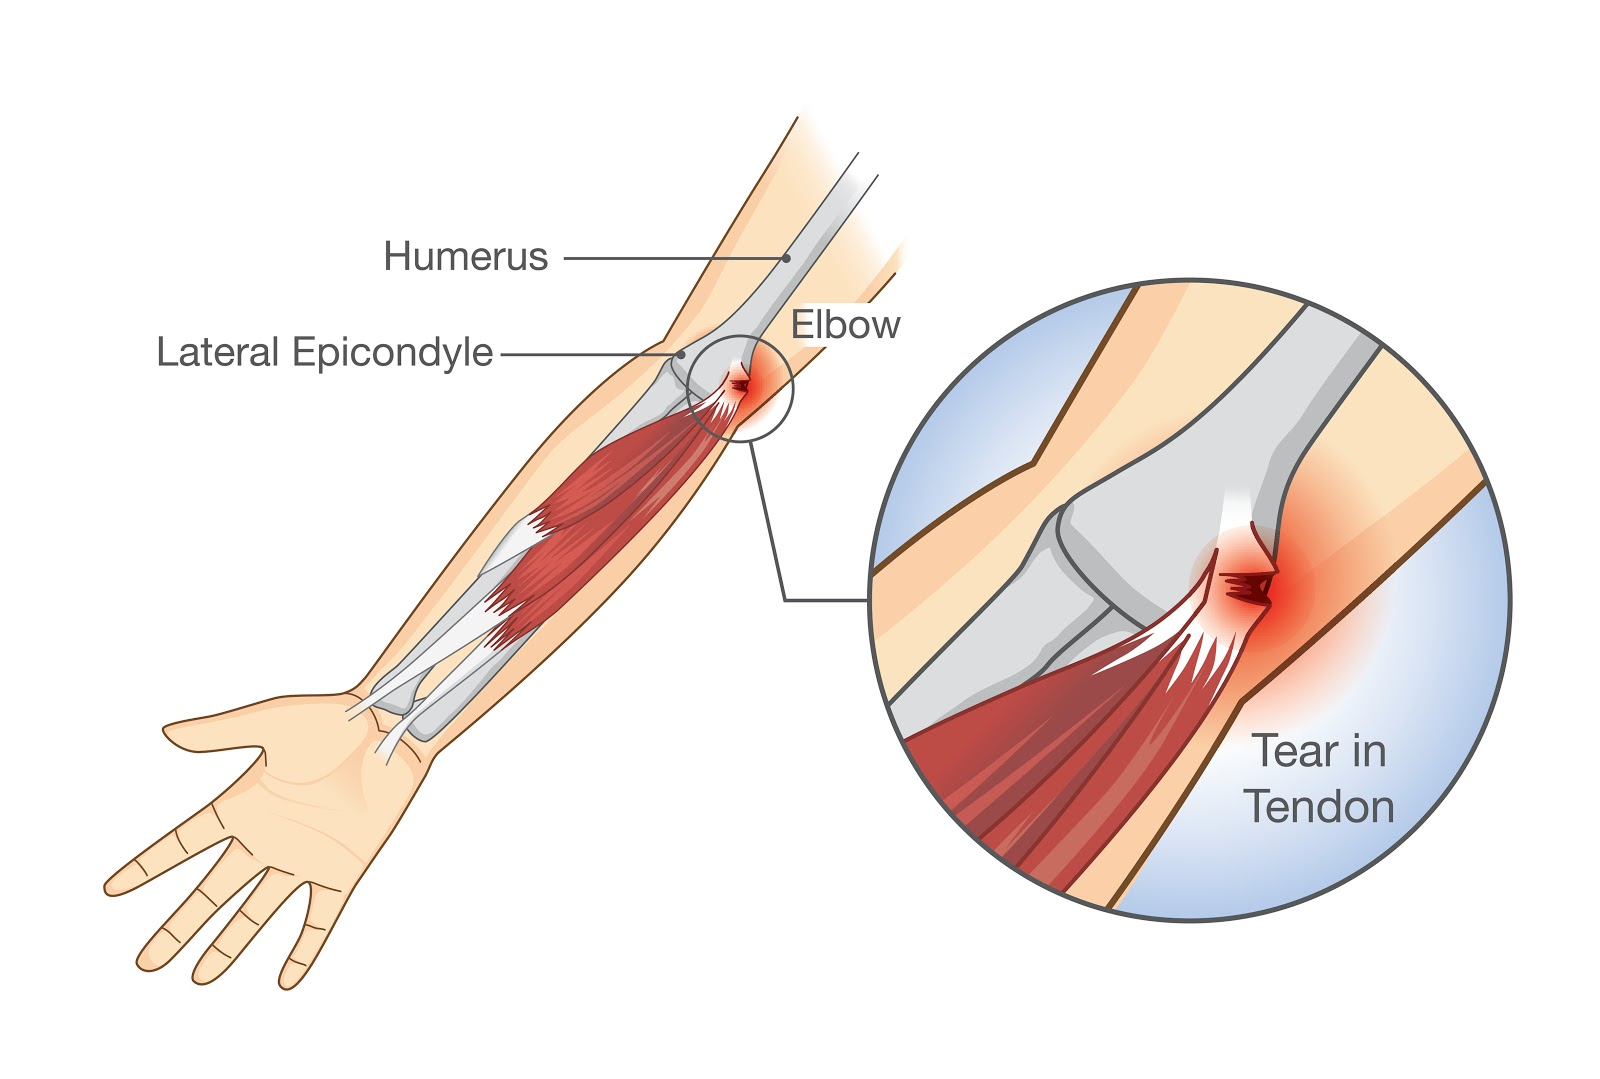 Image showing the tear in tendon associated with tennis elbow.